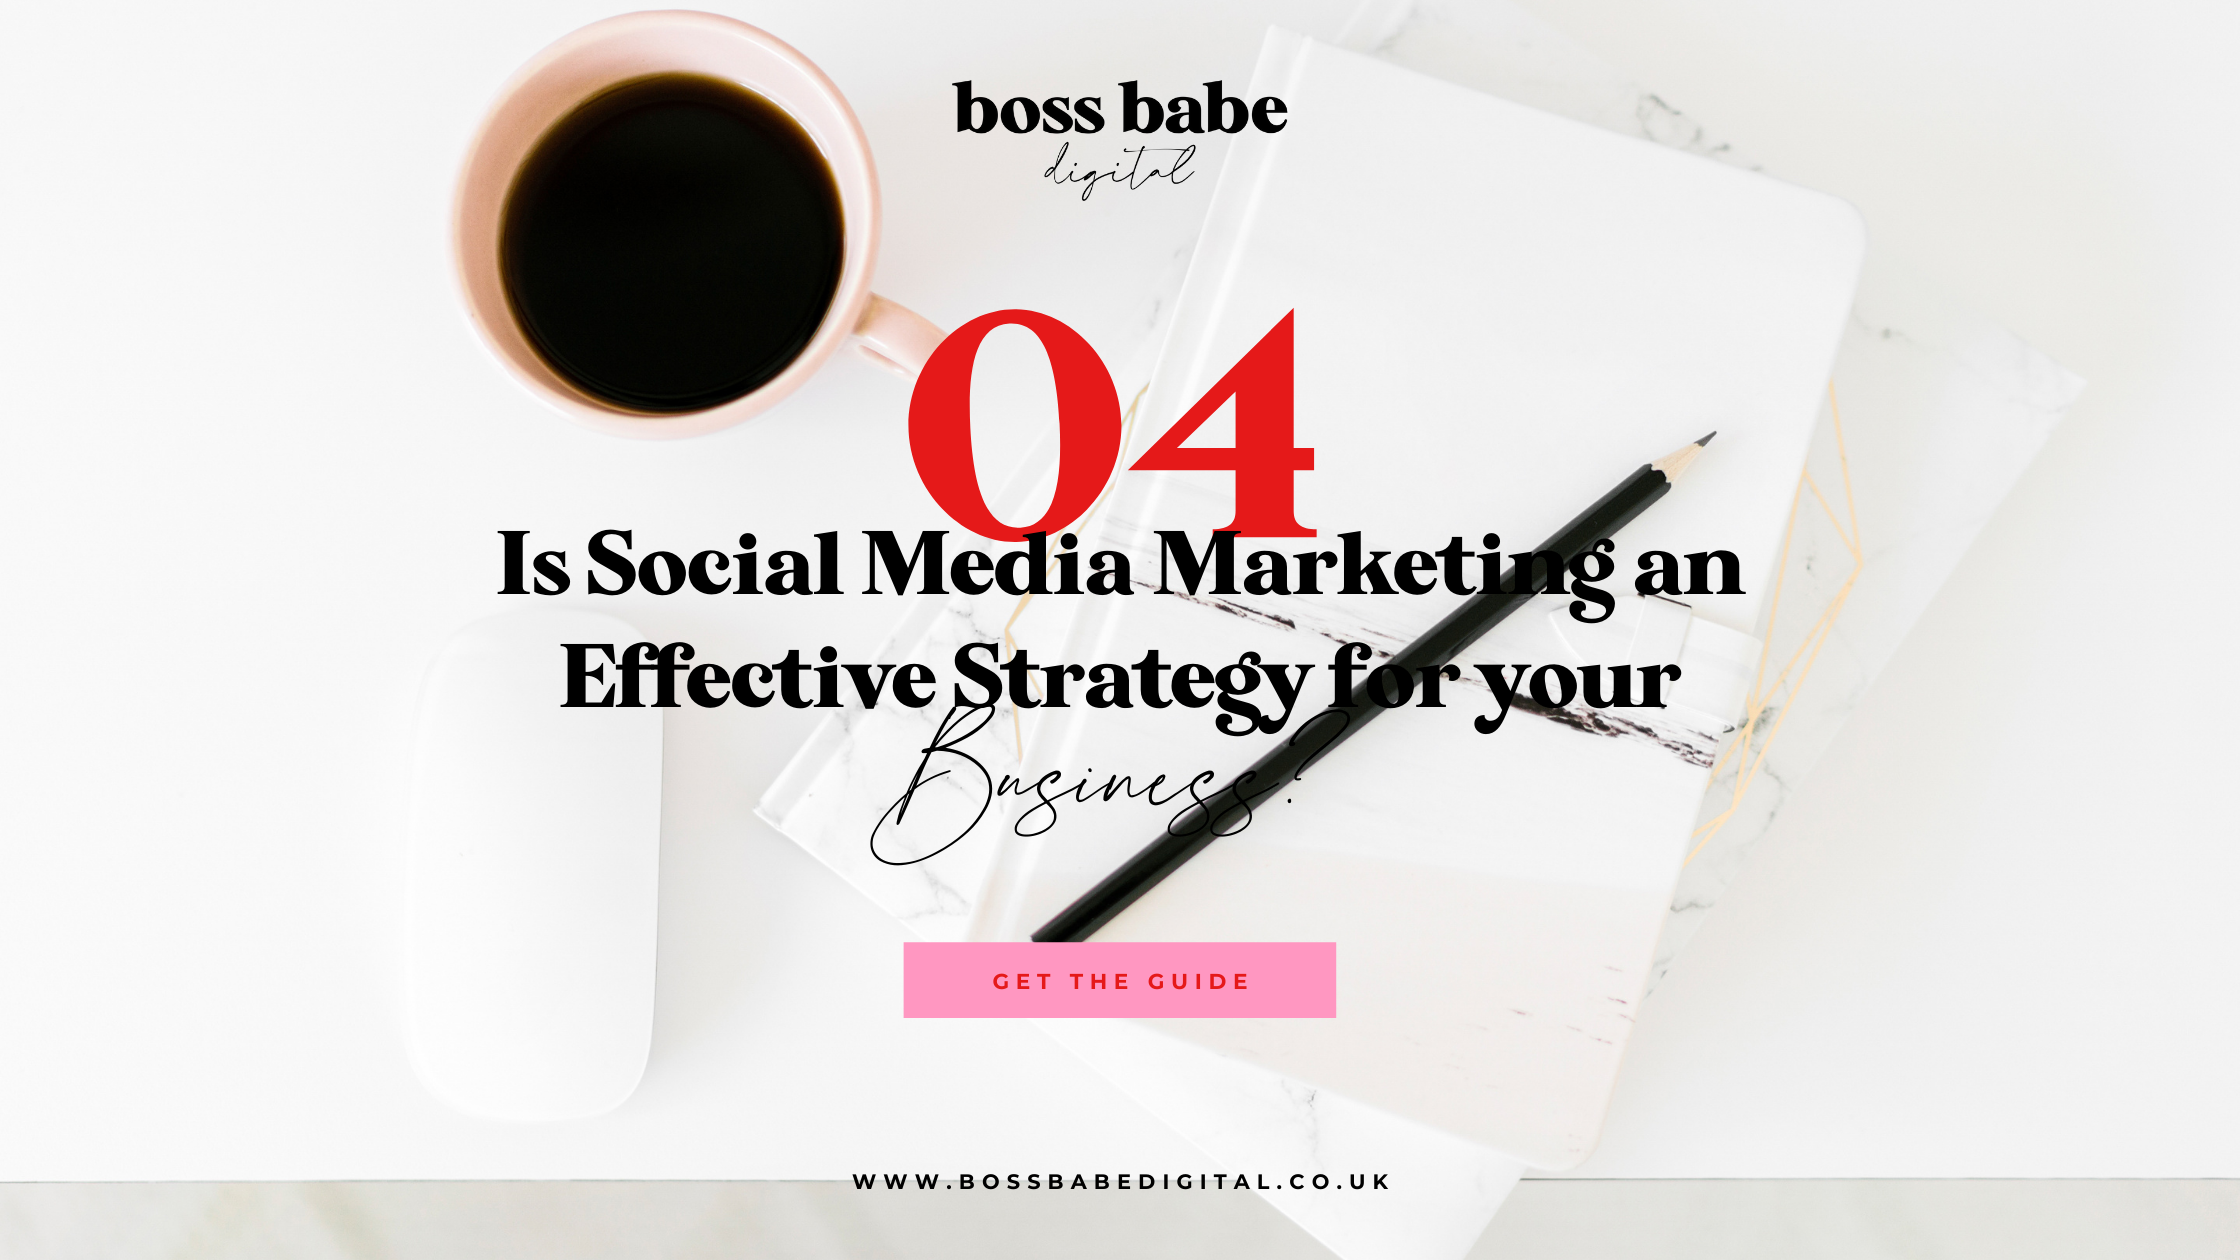 Is Social Media Marketing an Effective Strategy for your Business